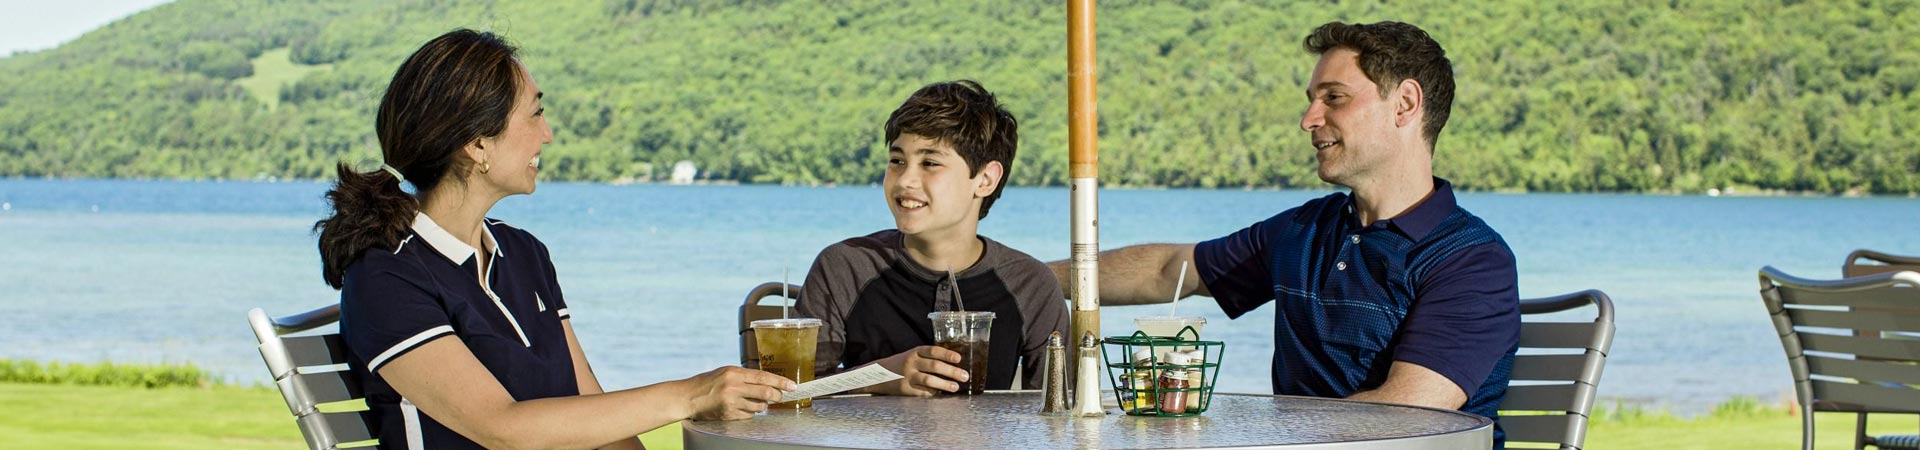 Leatherstocking Golf Bar & Grill in The Otesaga Resort Hotel Cooperstown, New York